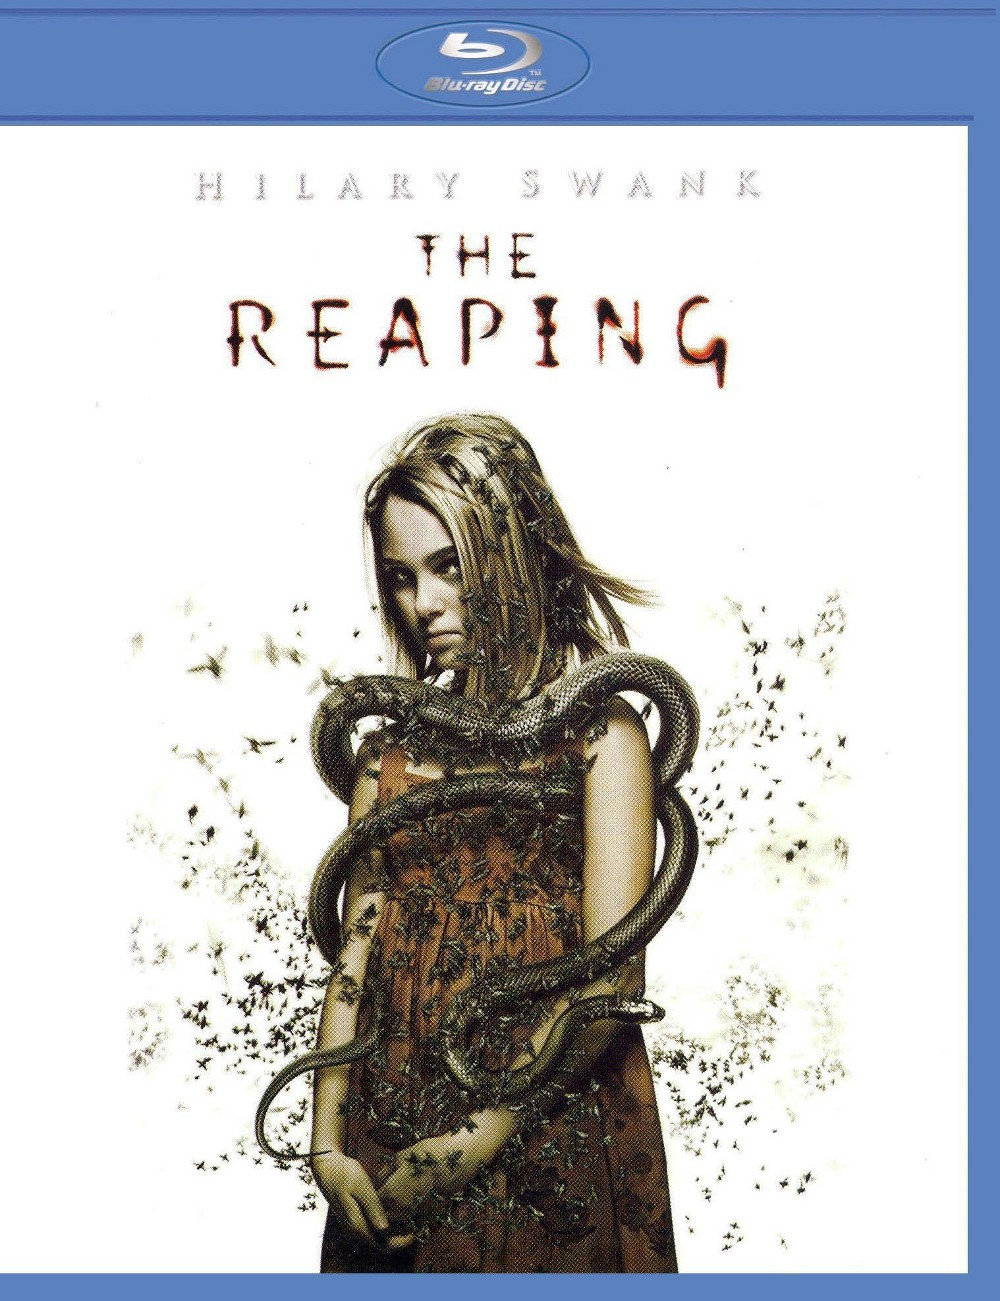 The Reaping [Blu-ray], Update Item Type